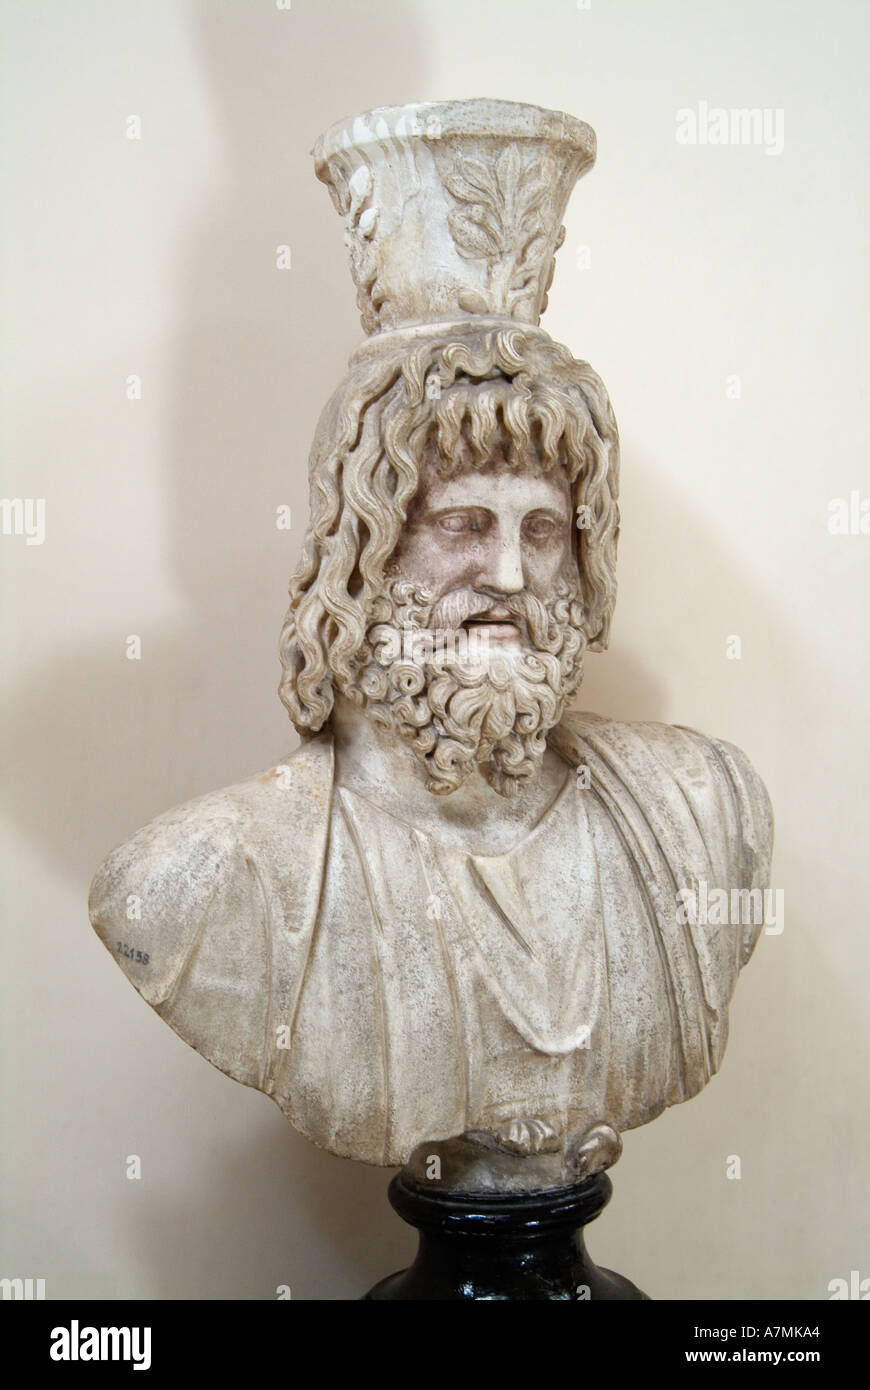 Bust of the god Serapis, Greco-Roman Museum, Alexandria, Egypt - Stock Image